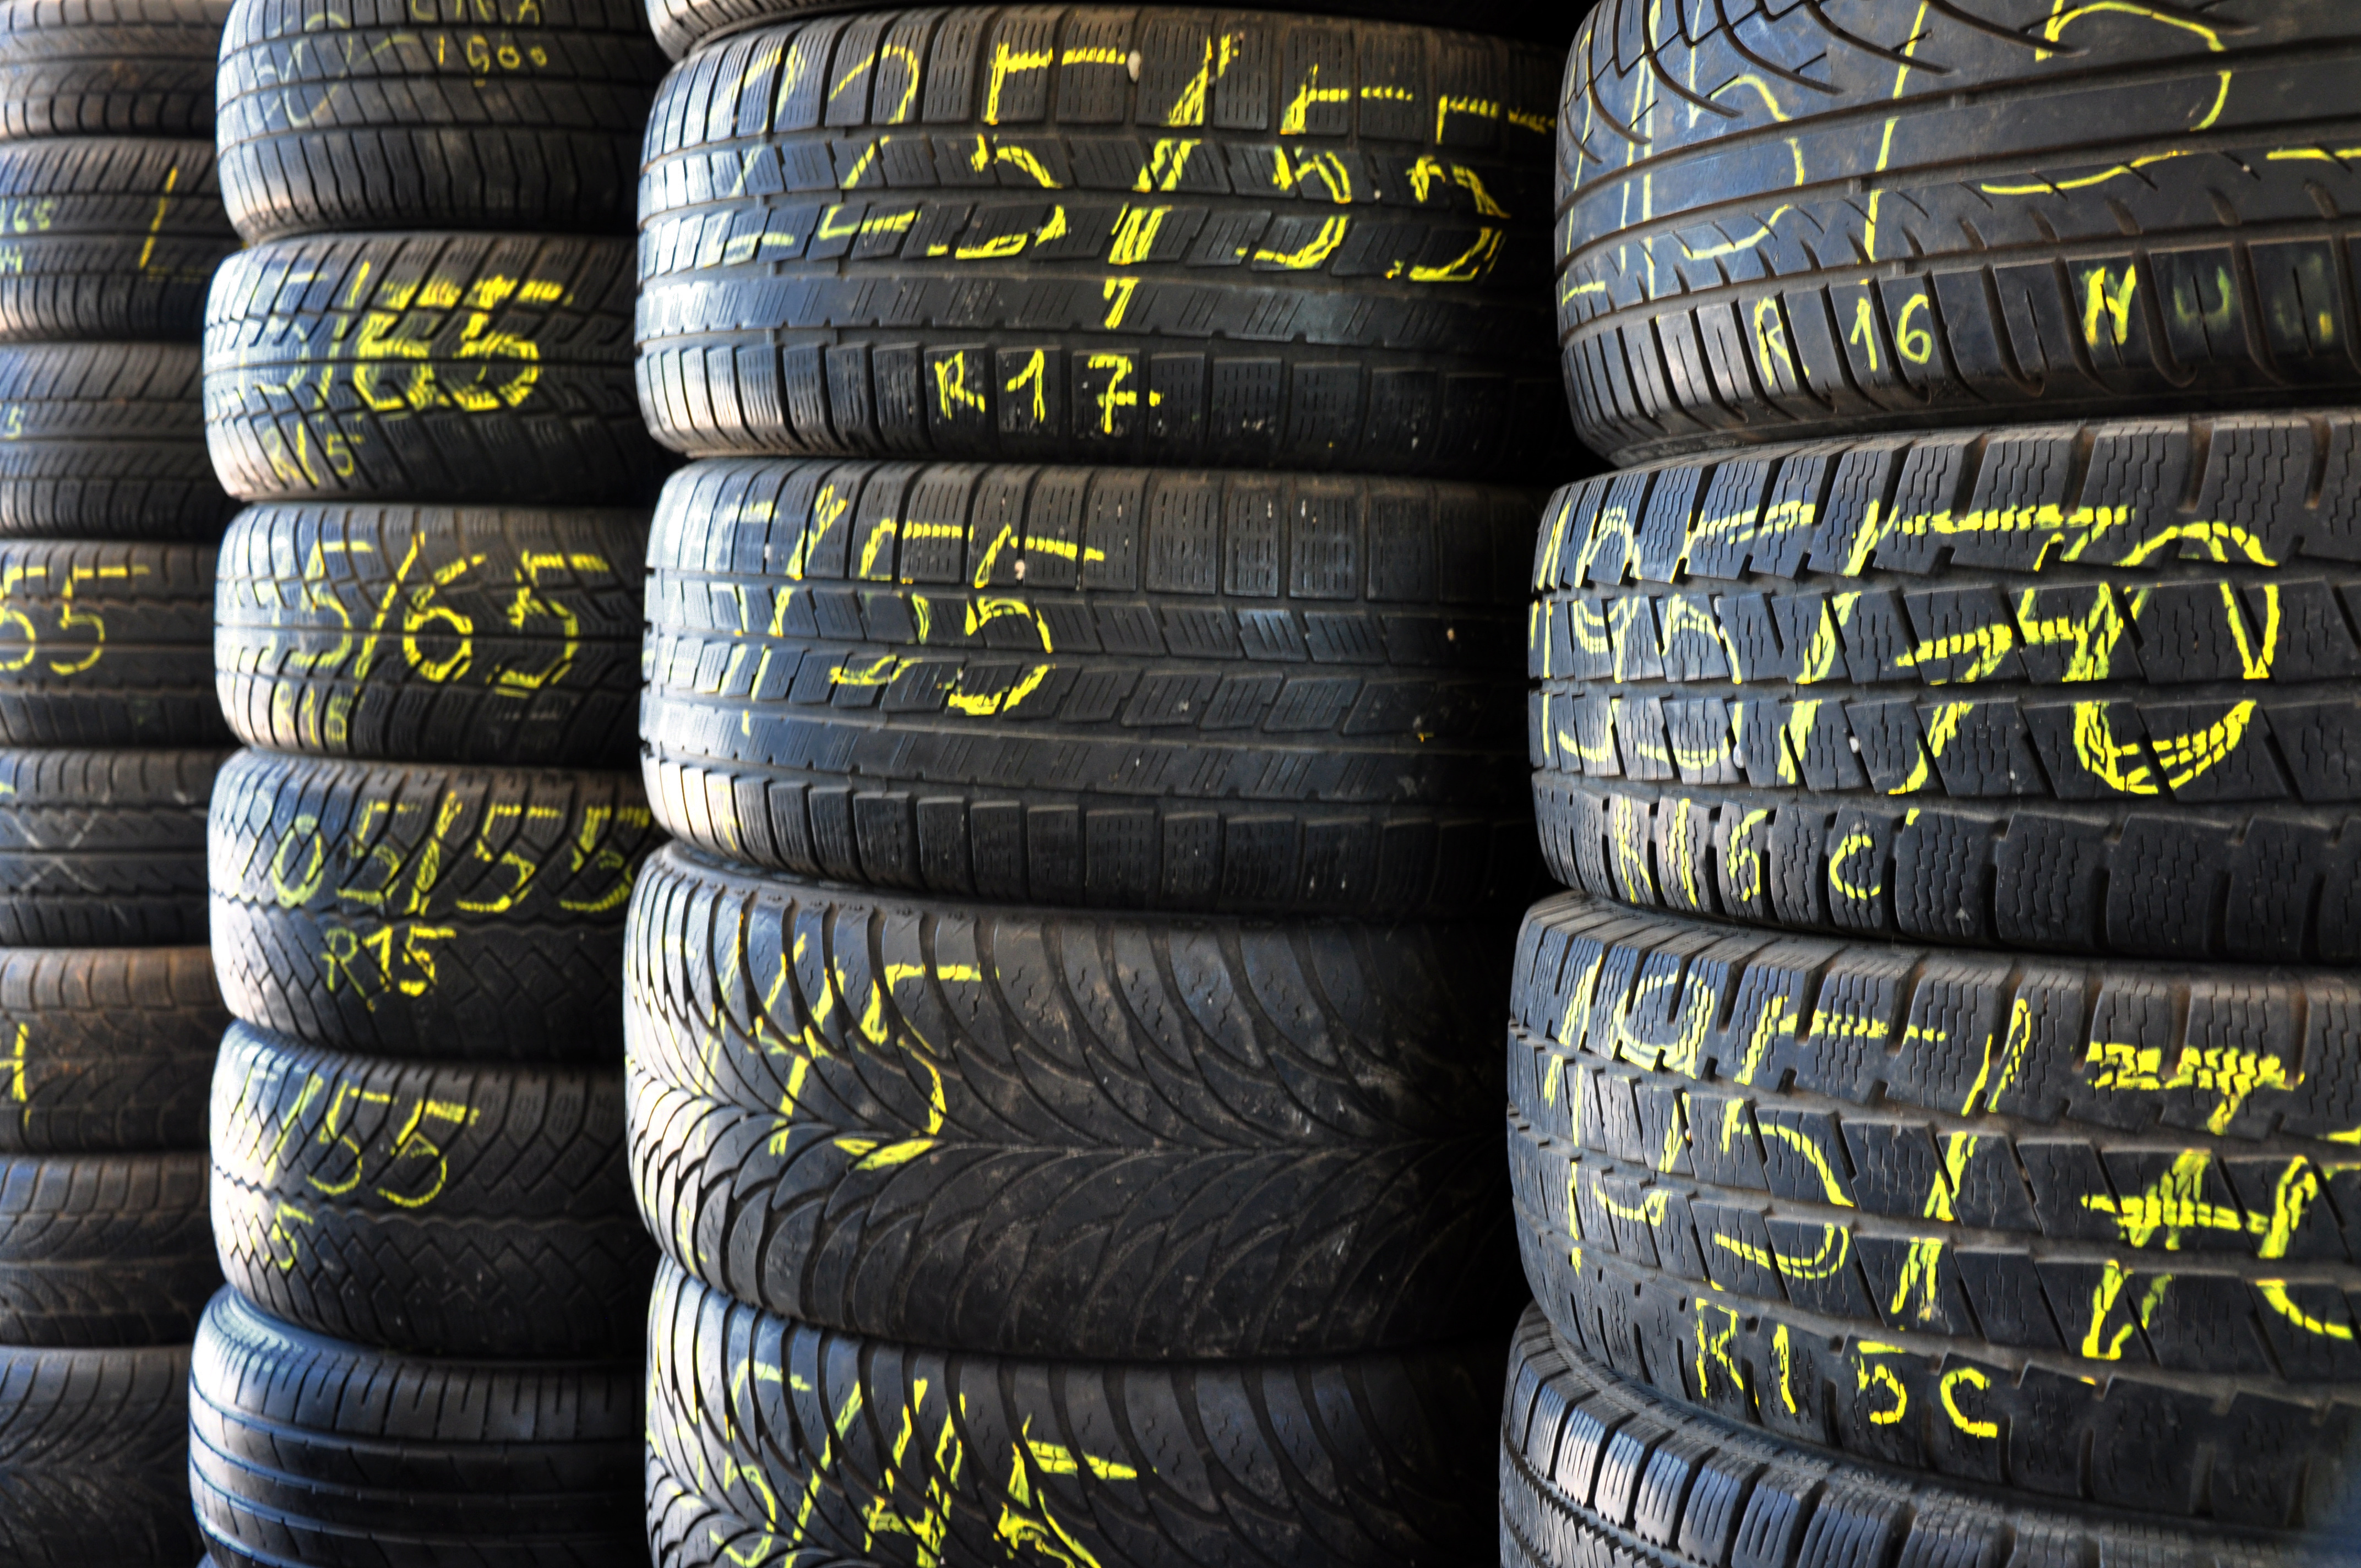 Tire Shops Near Me Open On Sunday >> Tire Repair Shop Used Tires For Sale New Tires